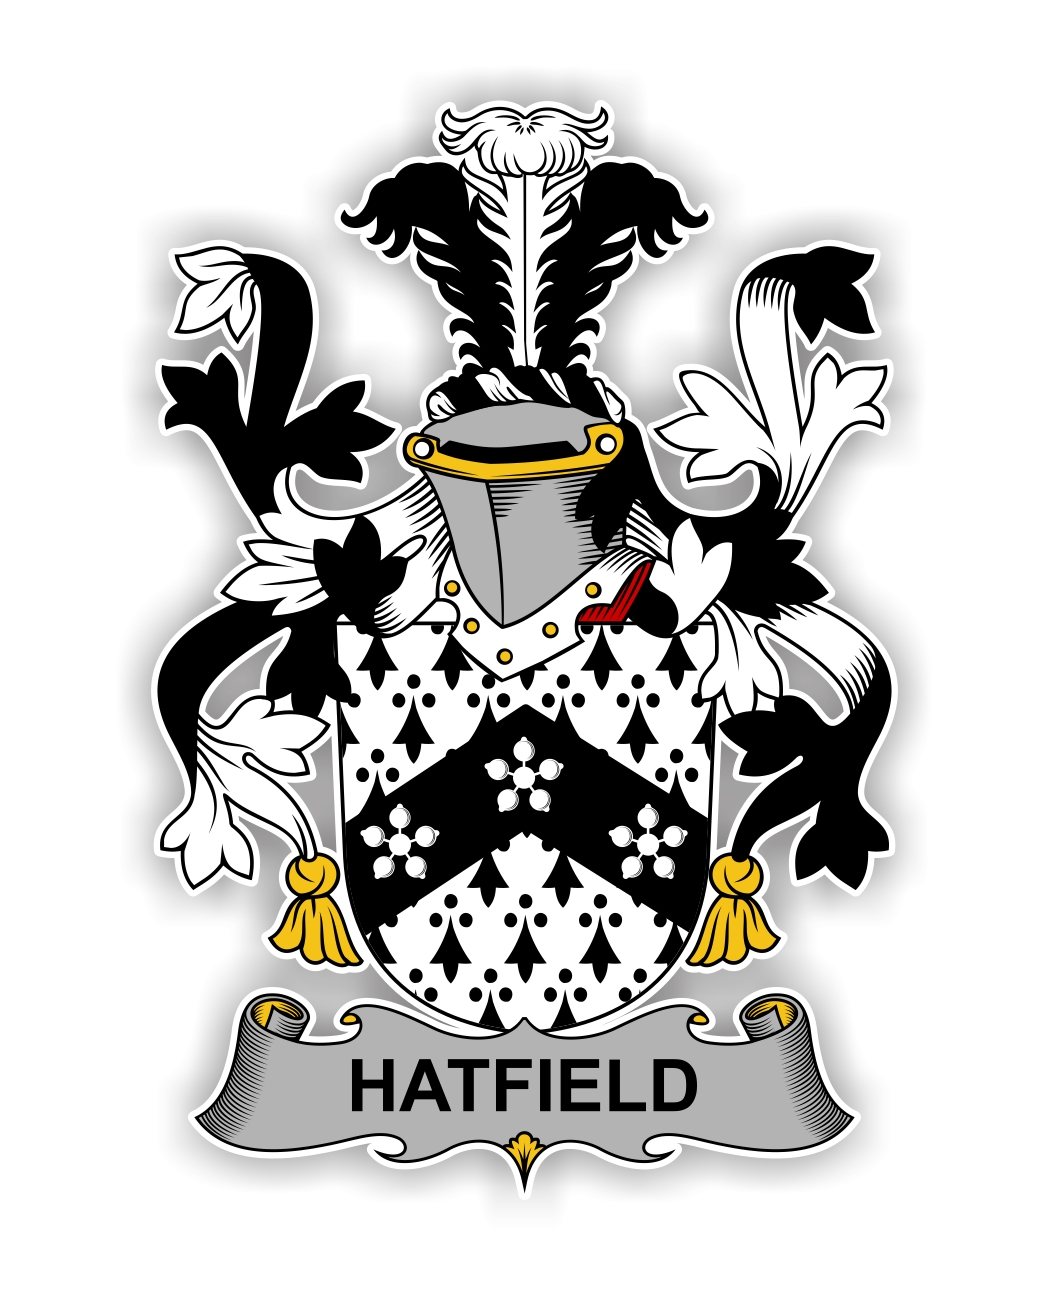 Hatfield Family Crest Vinyl Die Cut Decal Sticker 4